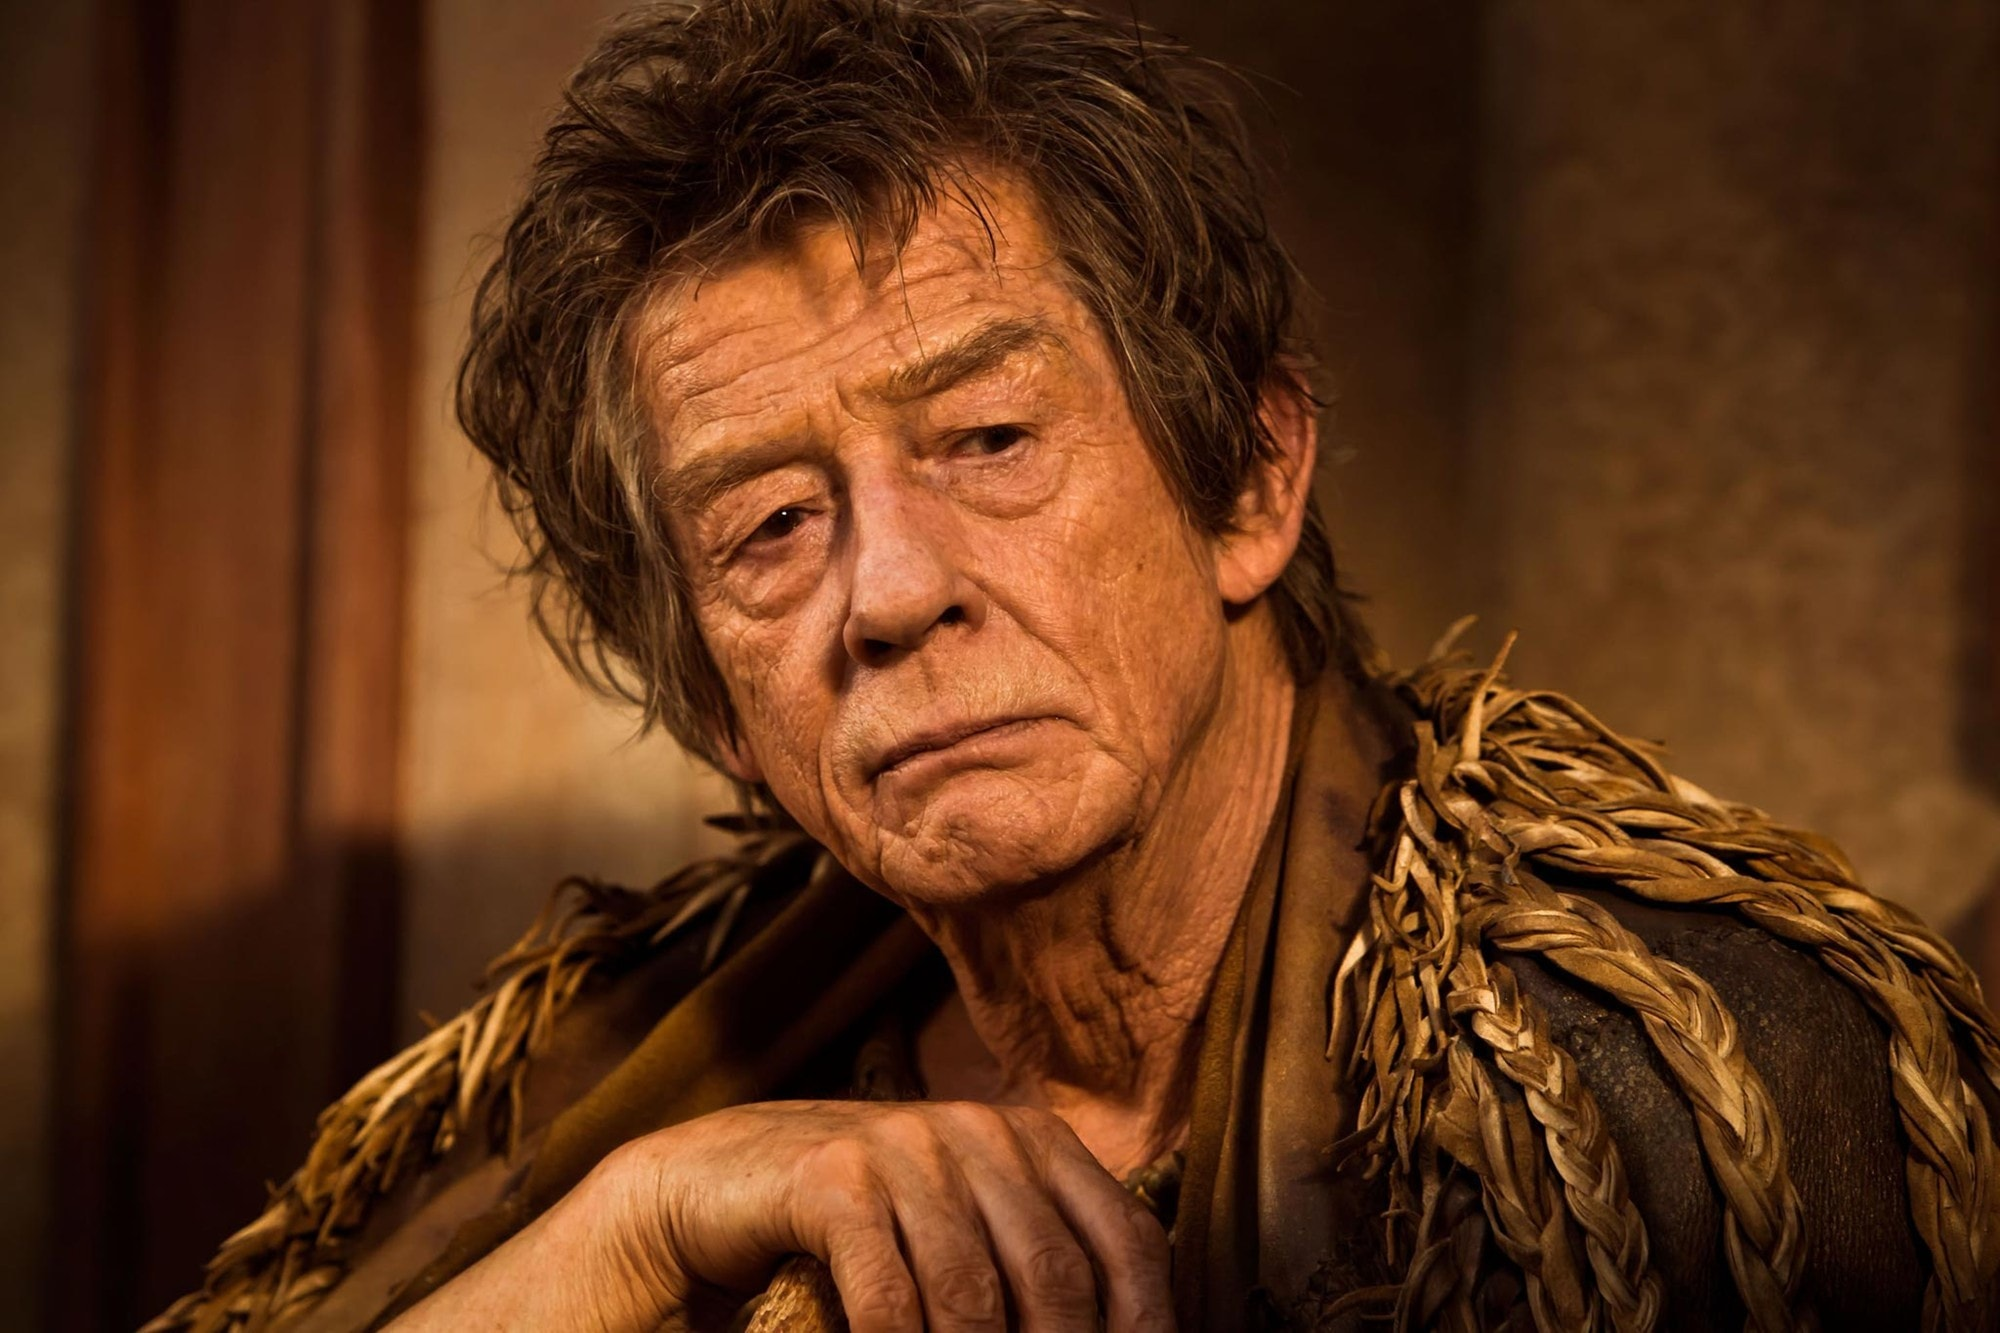 John Hurt Widescreen for desktop